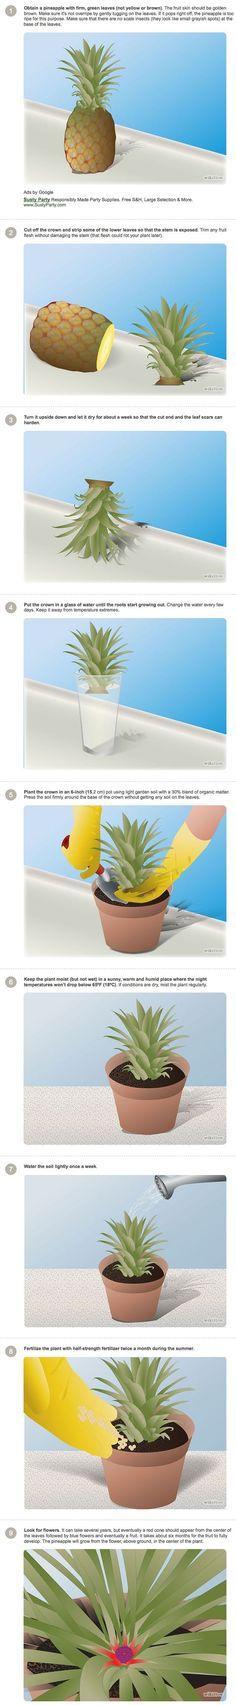 How to grow a pineapple-- wow I never knew that! For every pinaple I buy I could have another one! Lol